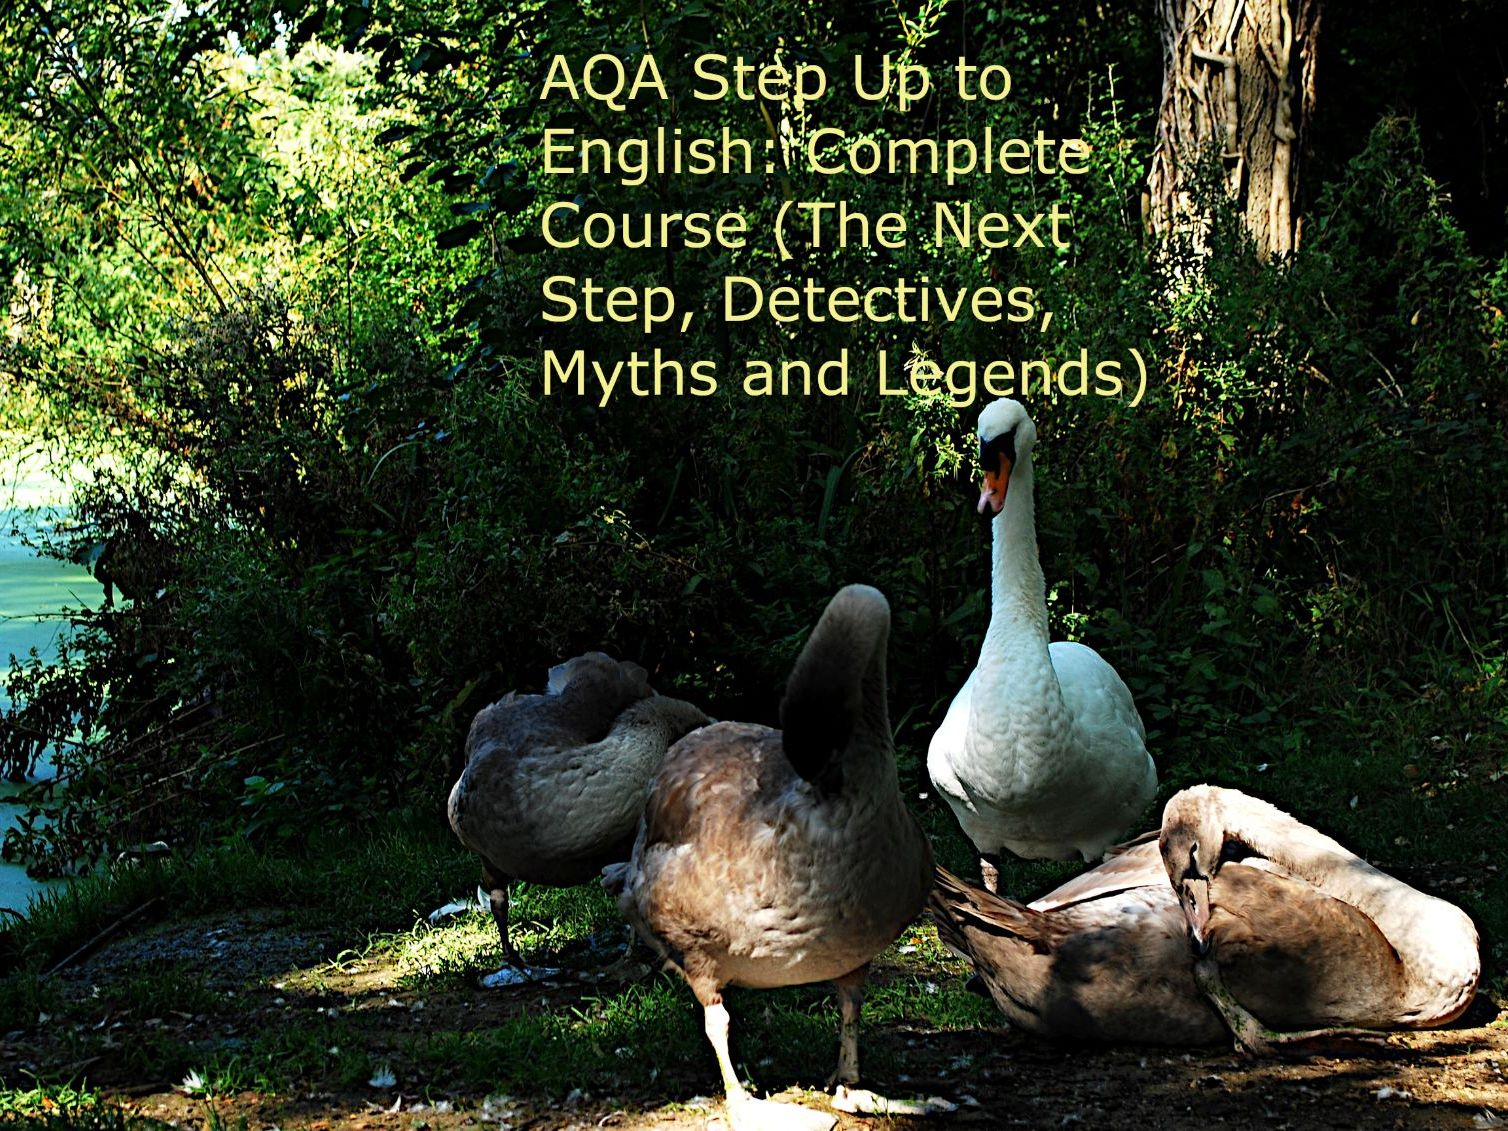 AQA Step Up to English: Complete Course (Next Step, Detectives, Myths and Legends)